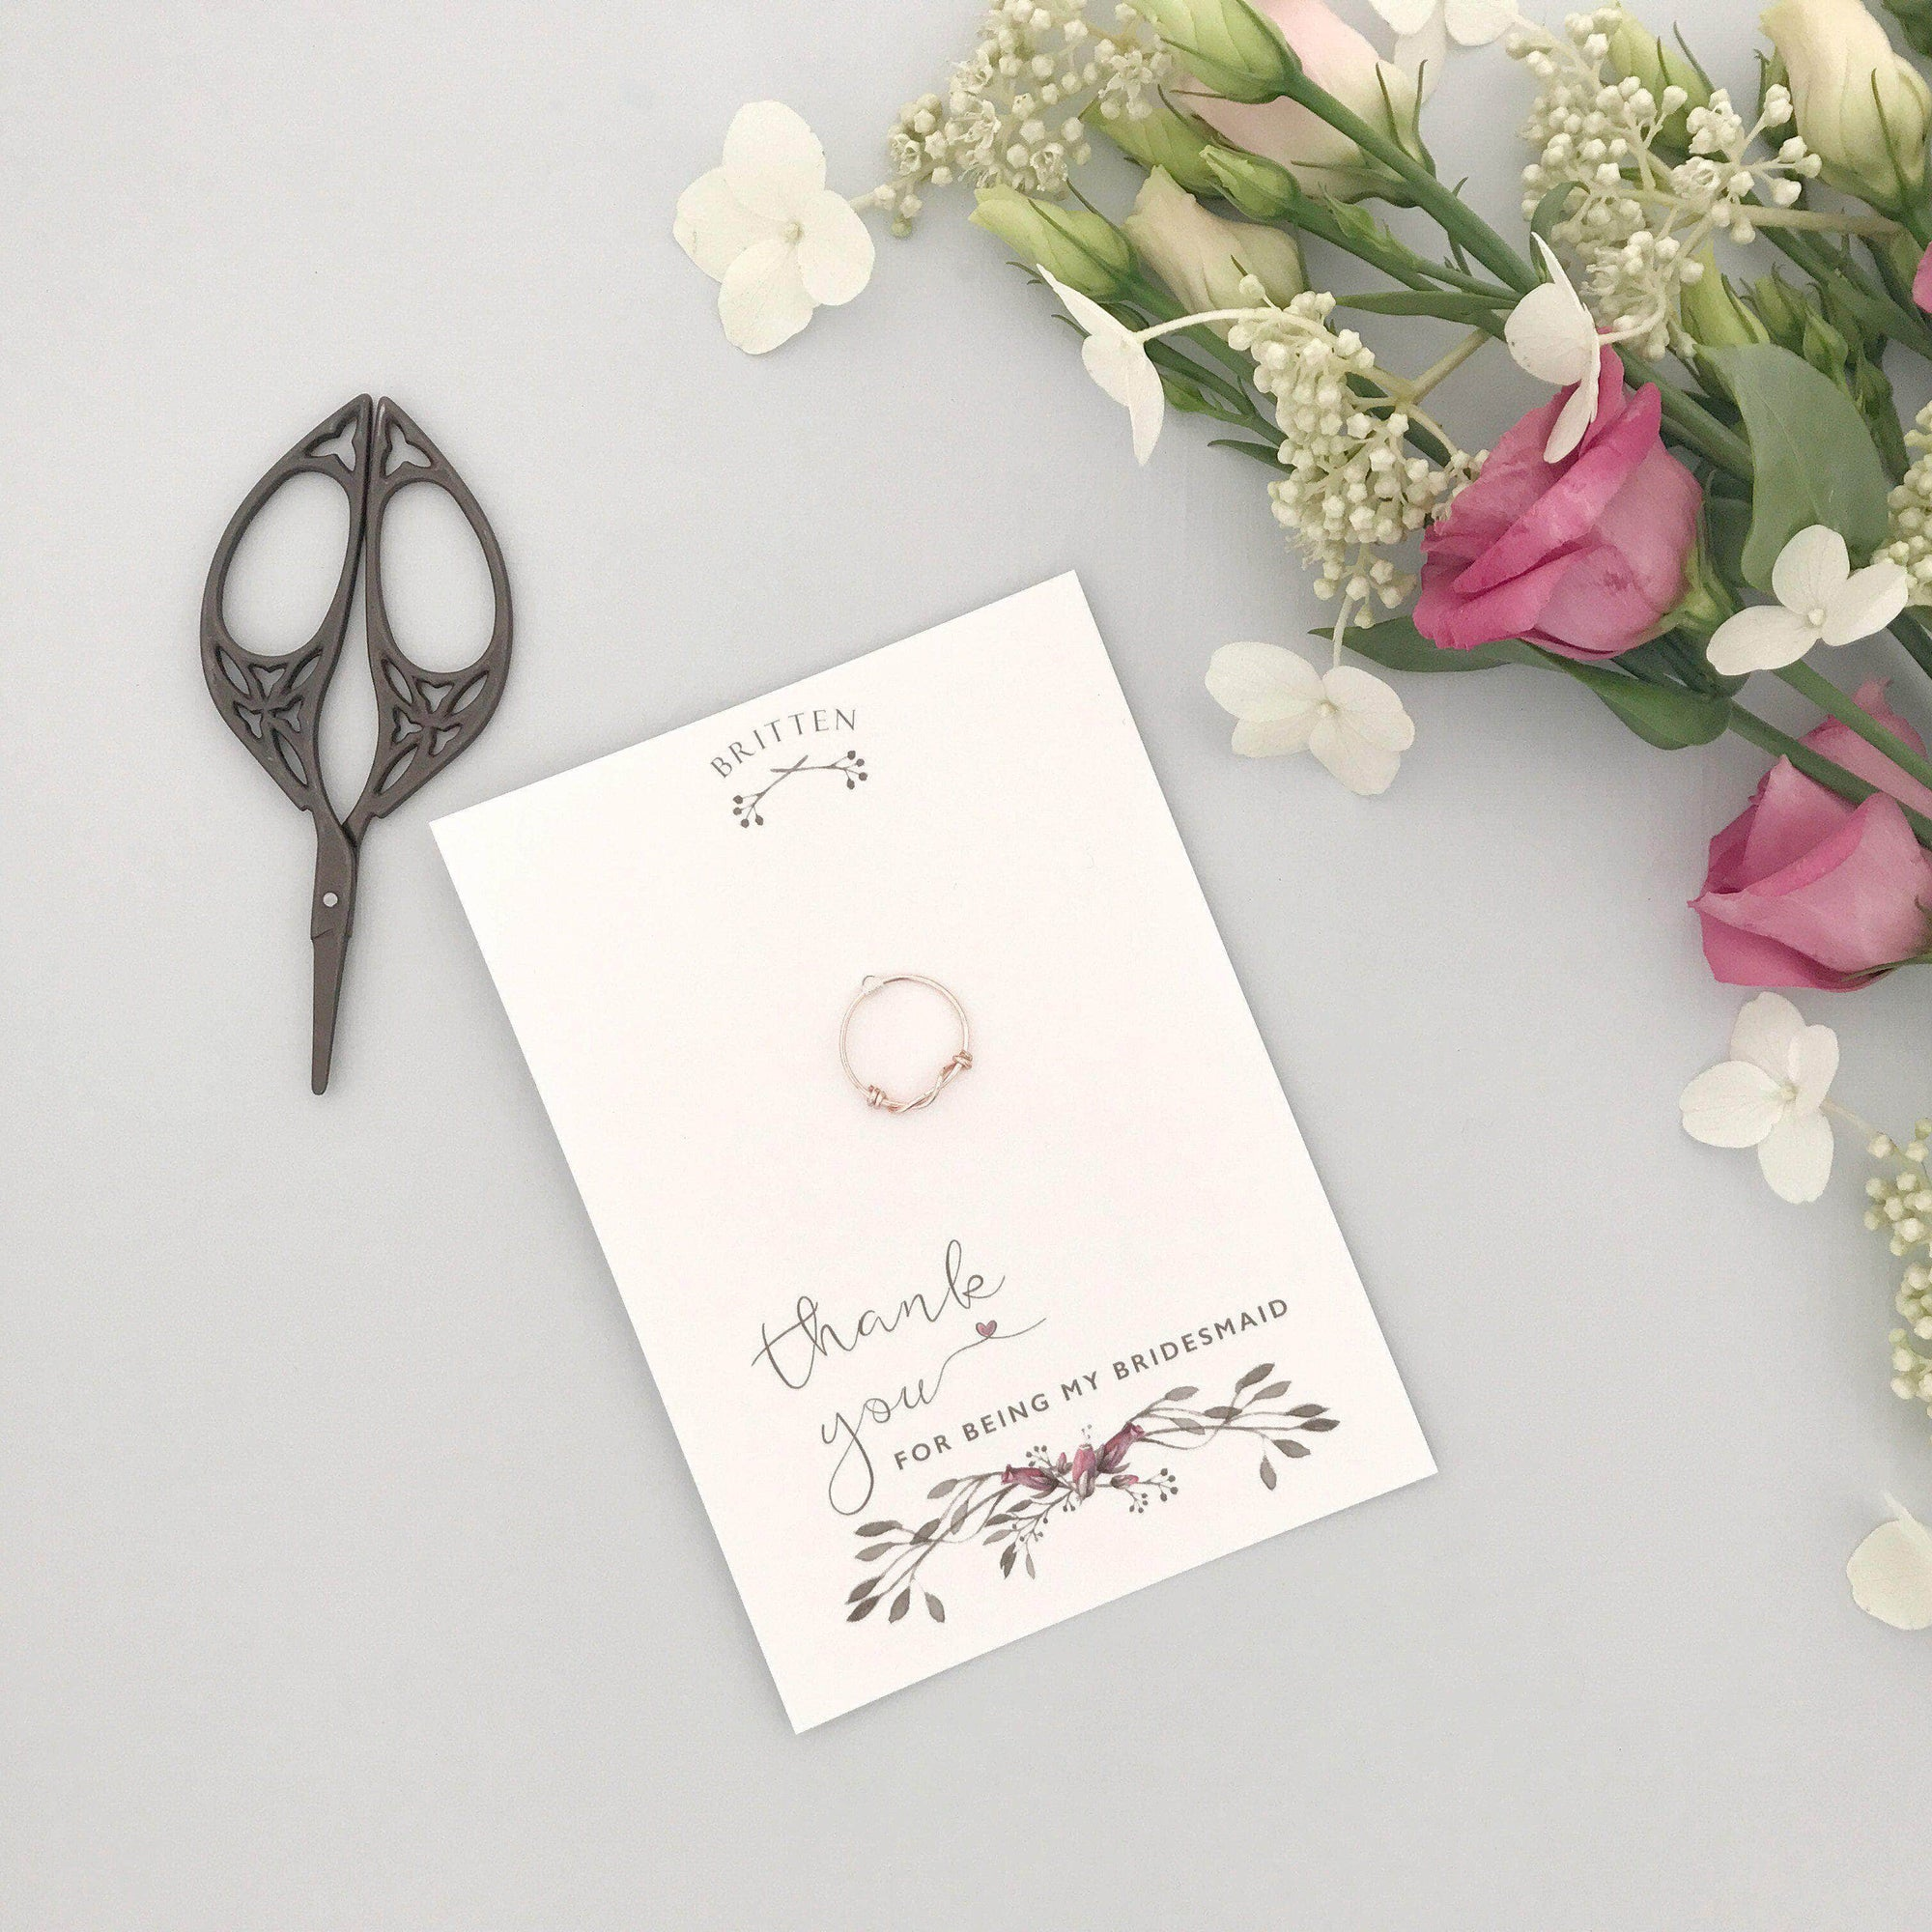 Bridesmaid Gift Rose gold Bridesmaid 'thank you' gift ring - 'Afia' in rose gold